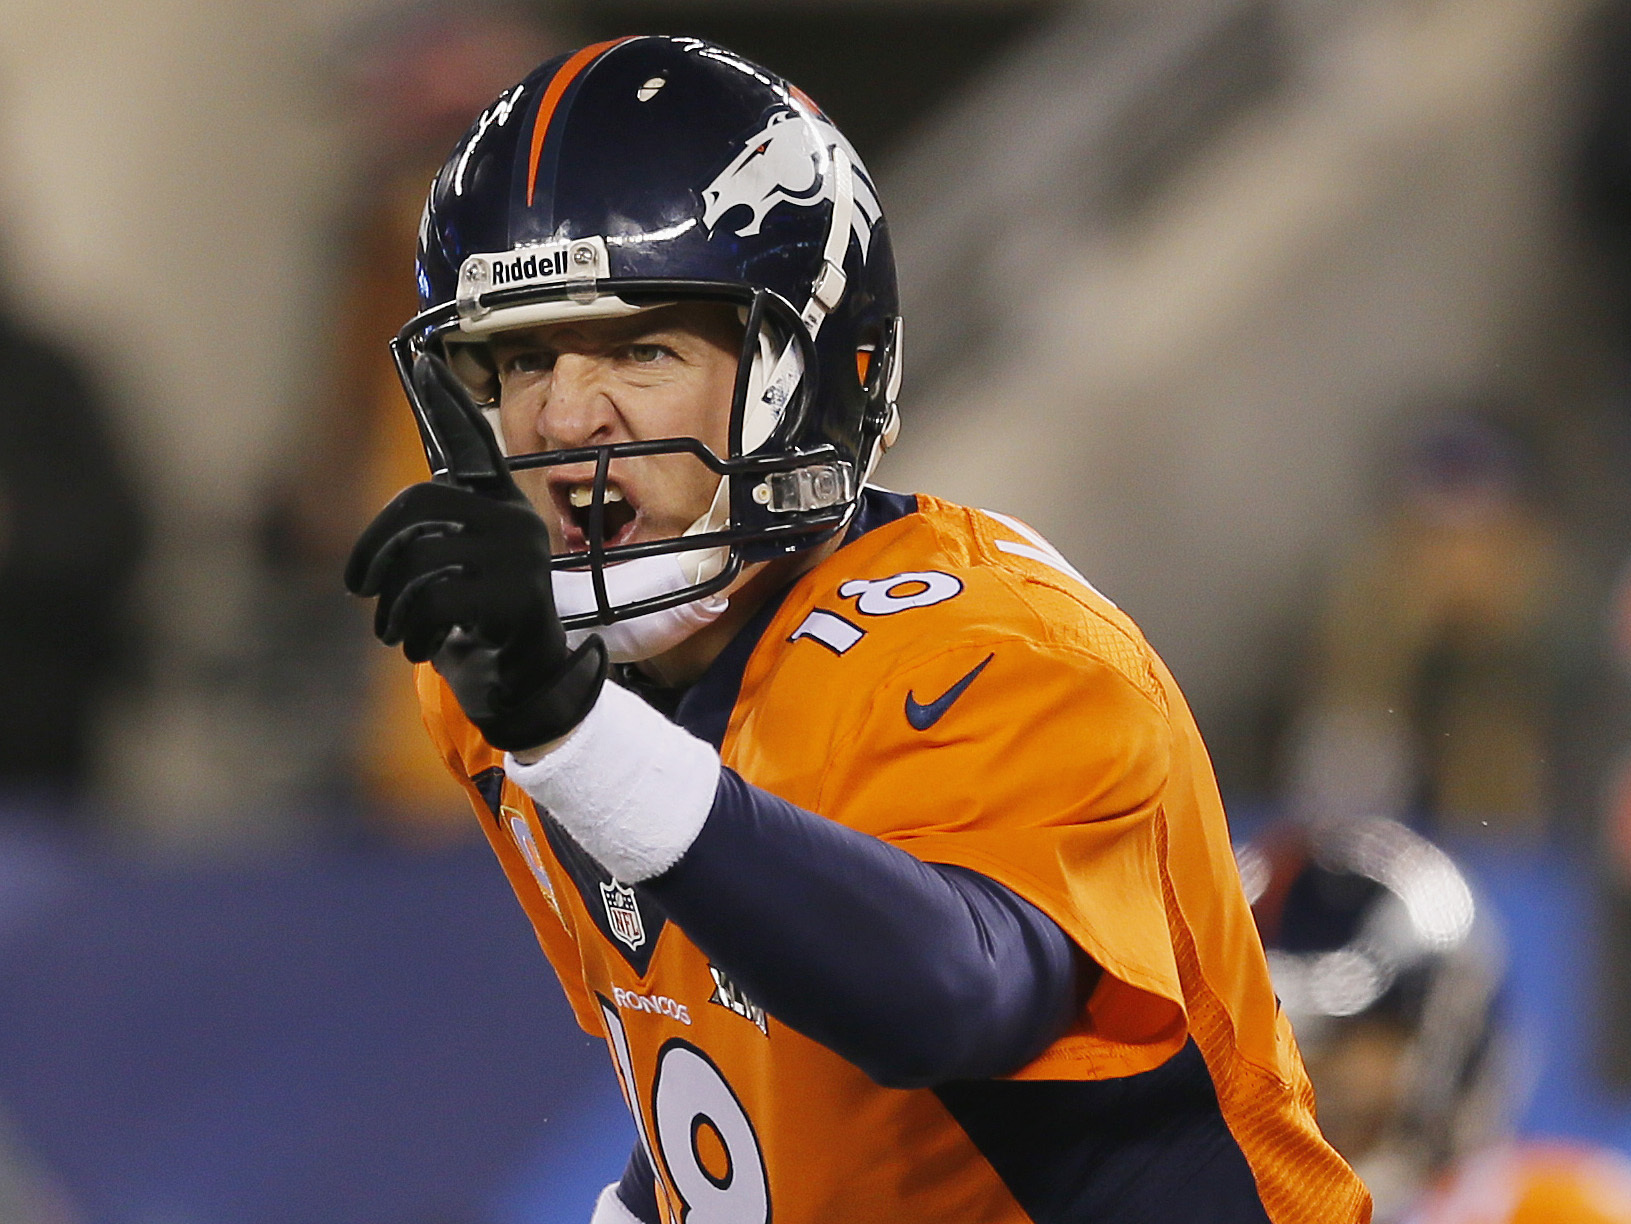 Peyton Manning: 'I was grateful to play for Coach Fox'